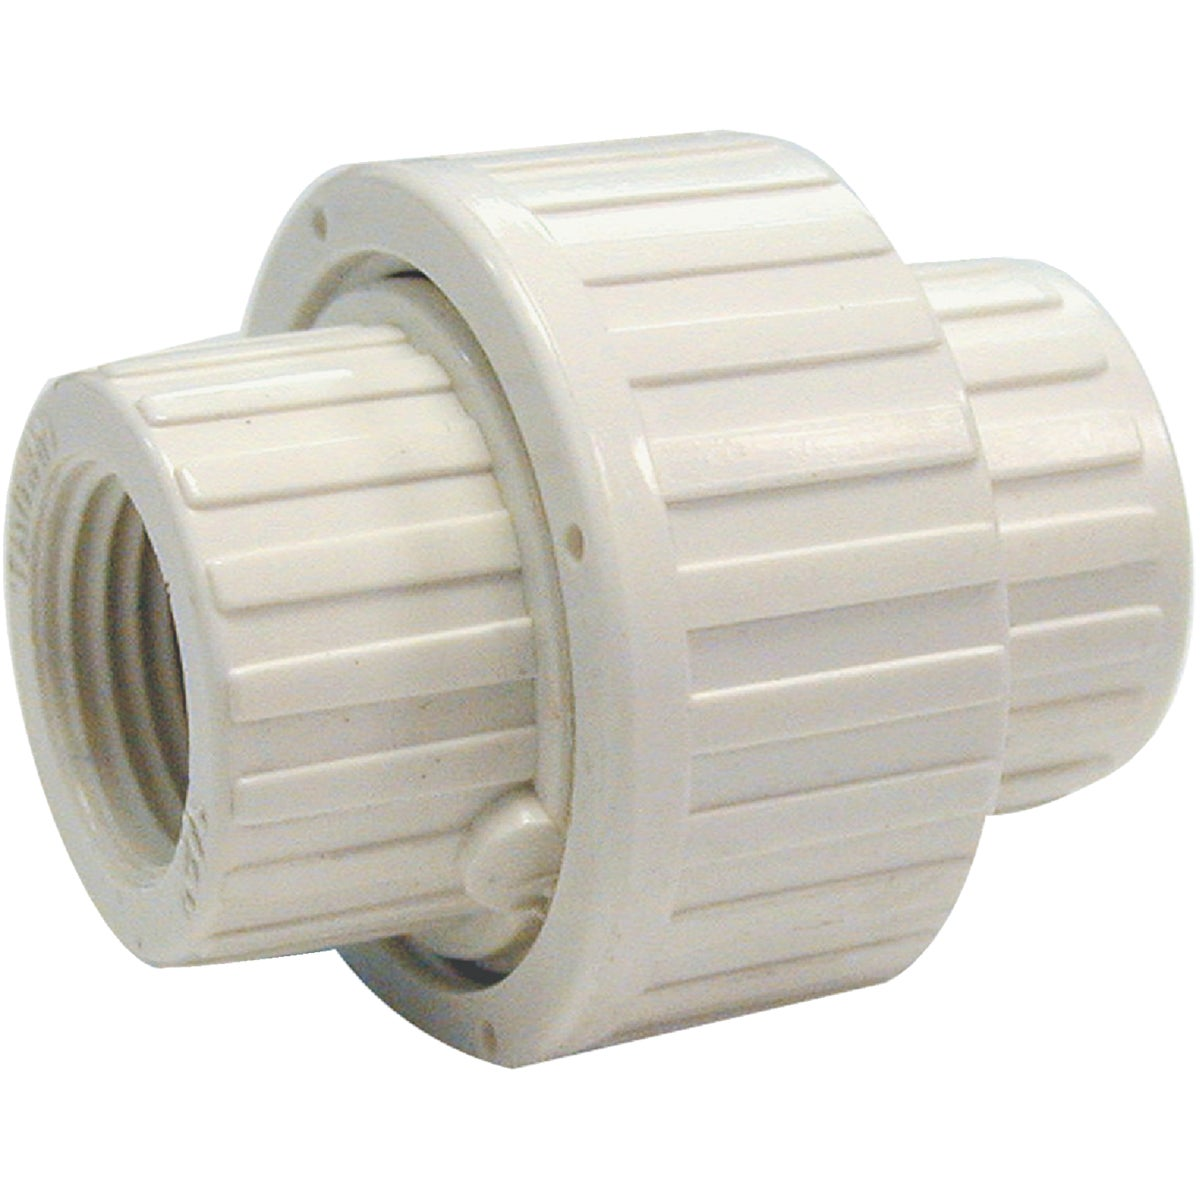 "WHT 1-1/2"" FIP PVC UNION - 164-137 by Mueller B K"